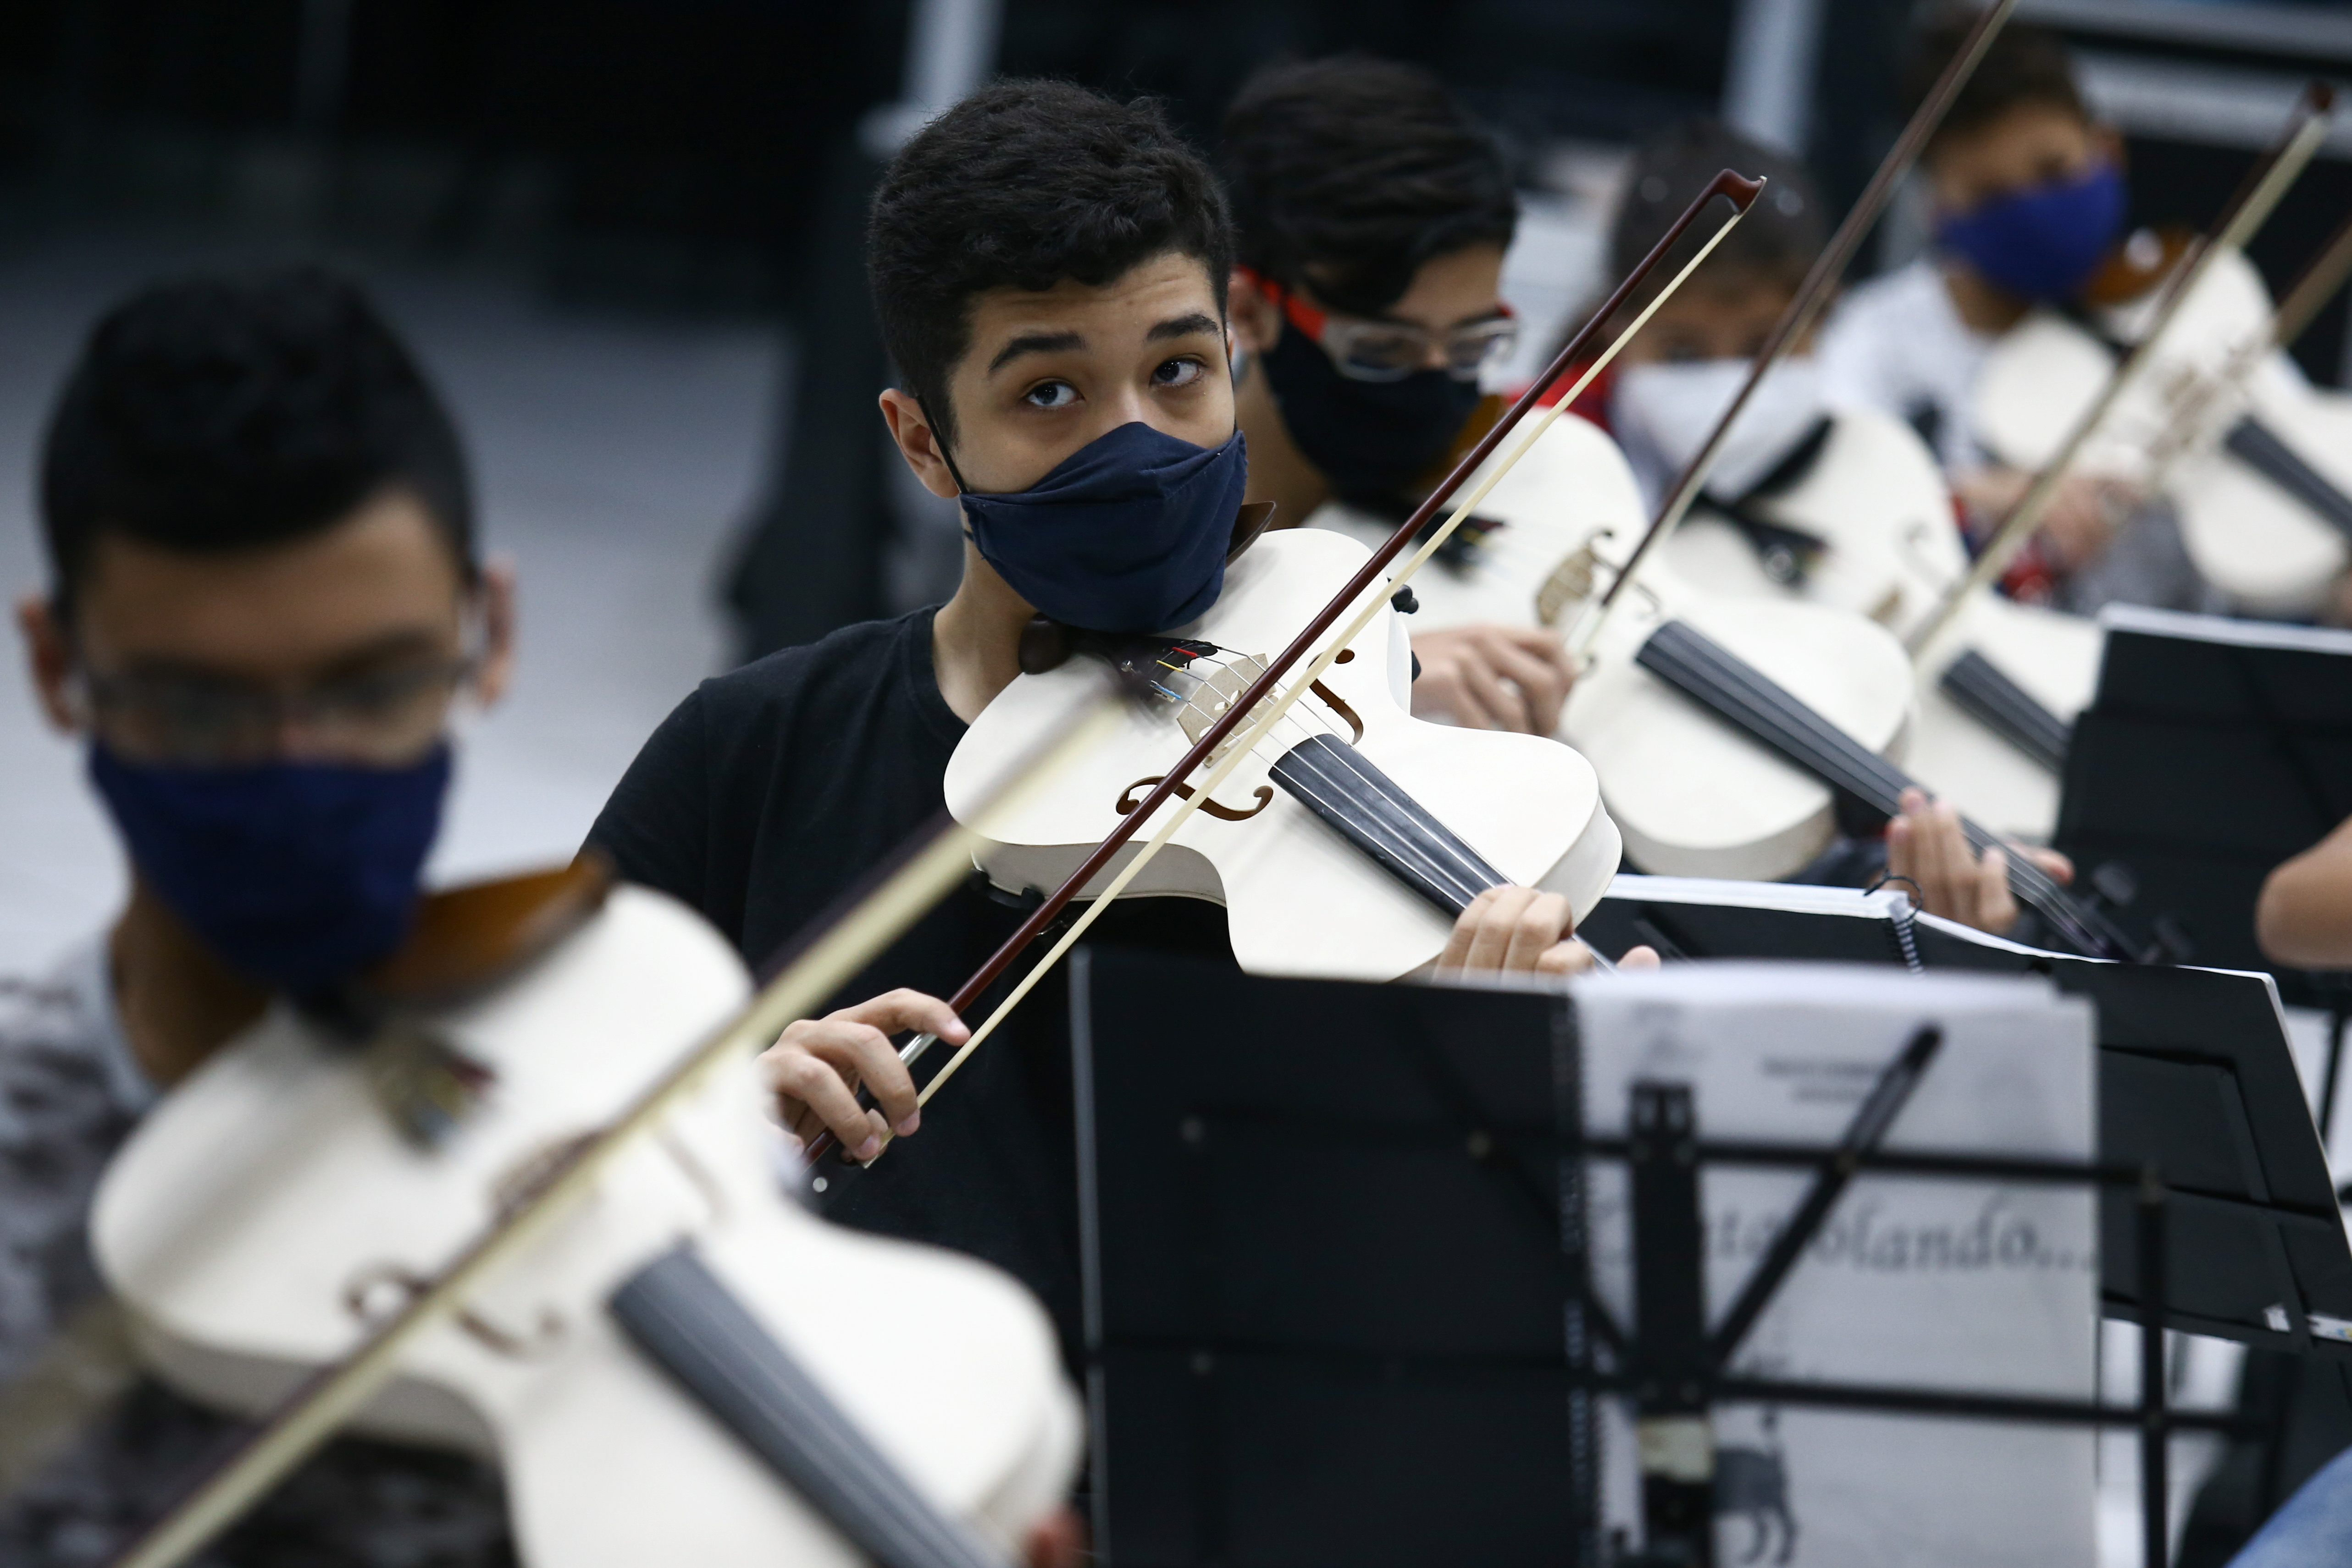 Students play violins made from PVC piping at Locomotiva Project, a free music school for at-risk children in Santo Andre, Brazil September 8, 2021.REUTERS/Carla Carniel